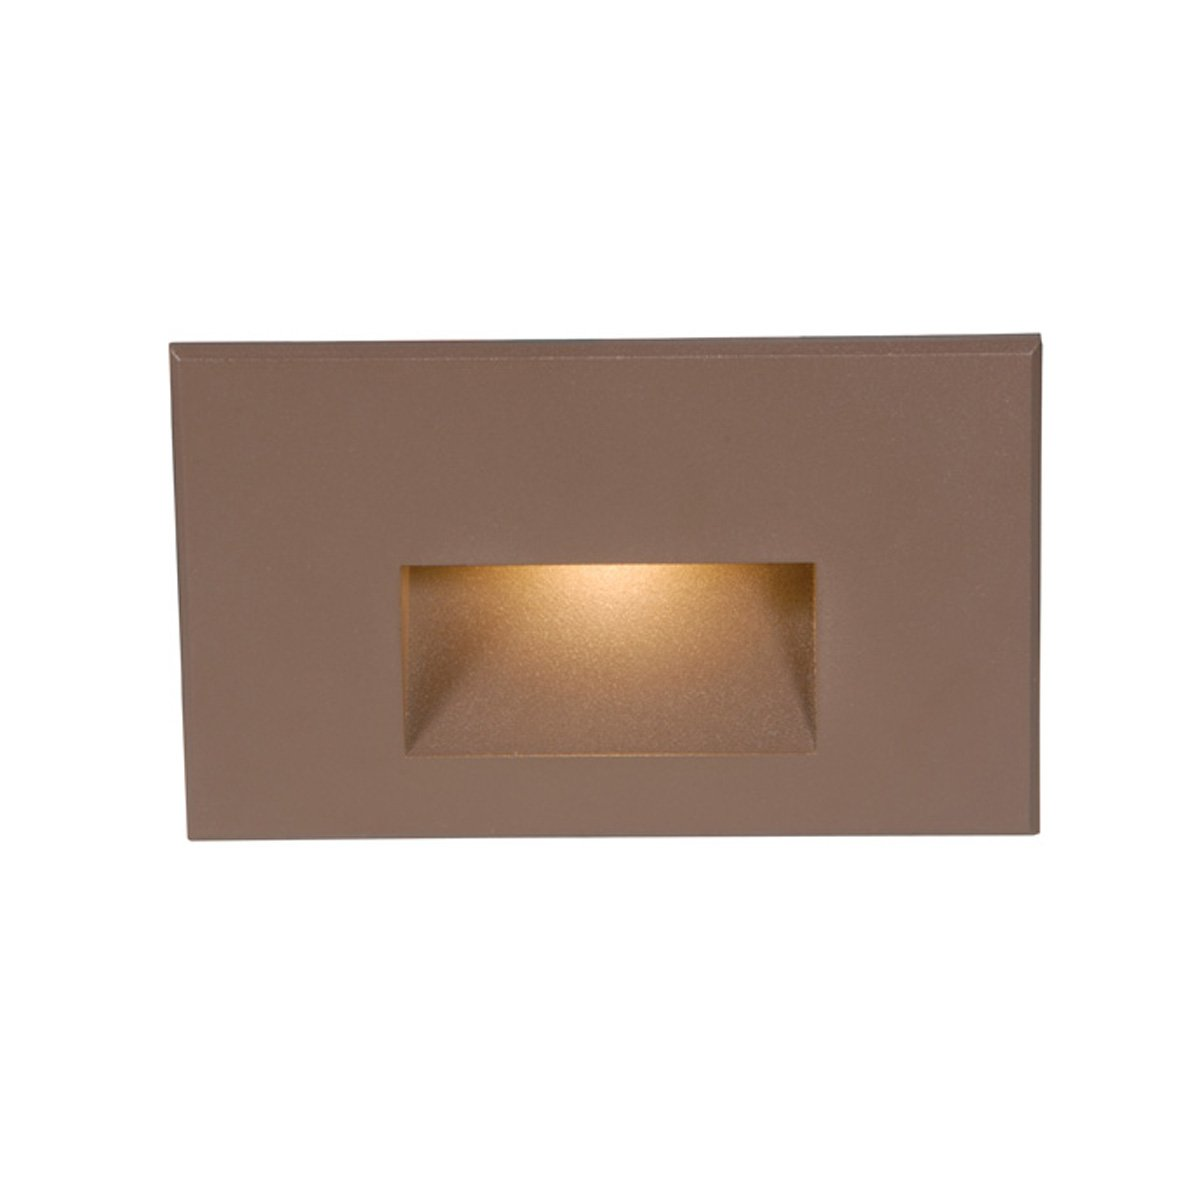 WAC Lighting WL-LED100-C-BZ LED Step Light Rectangular Scoop